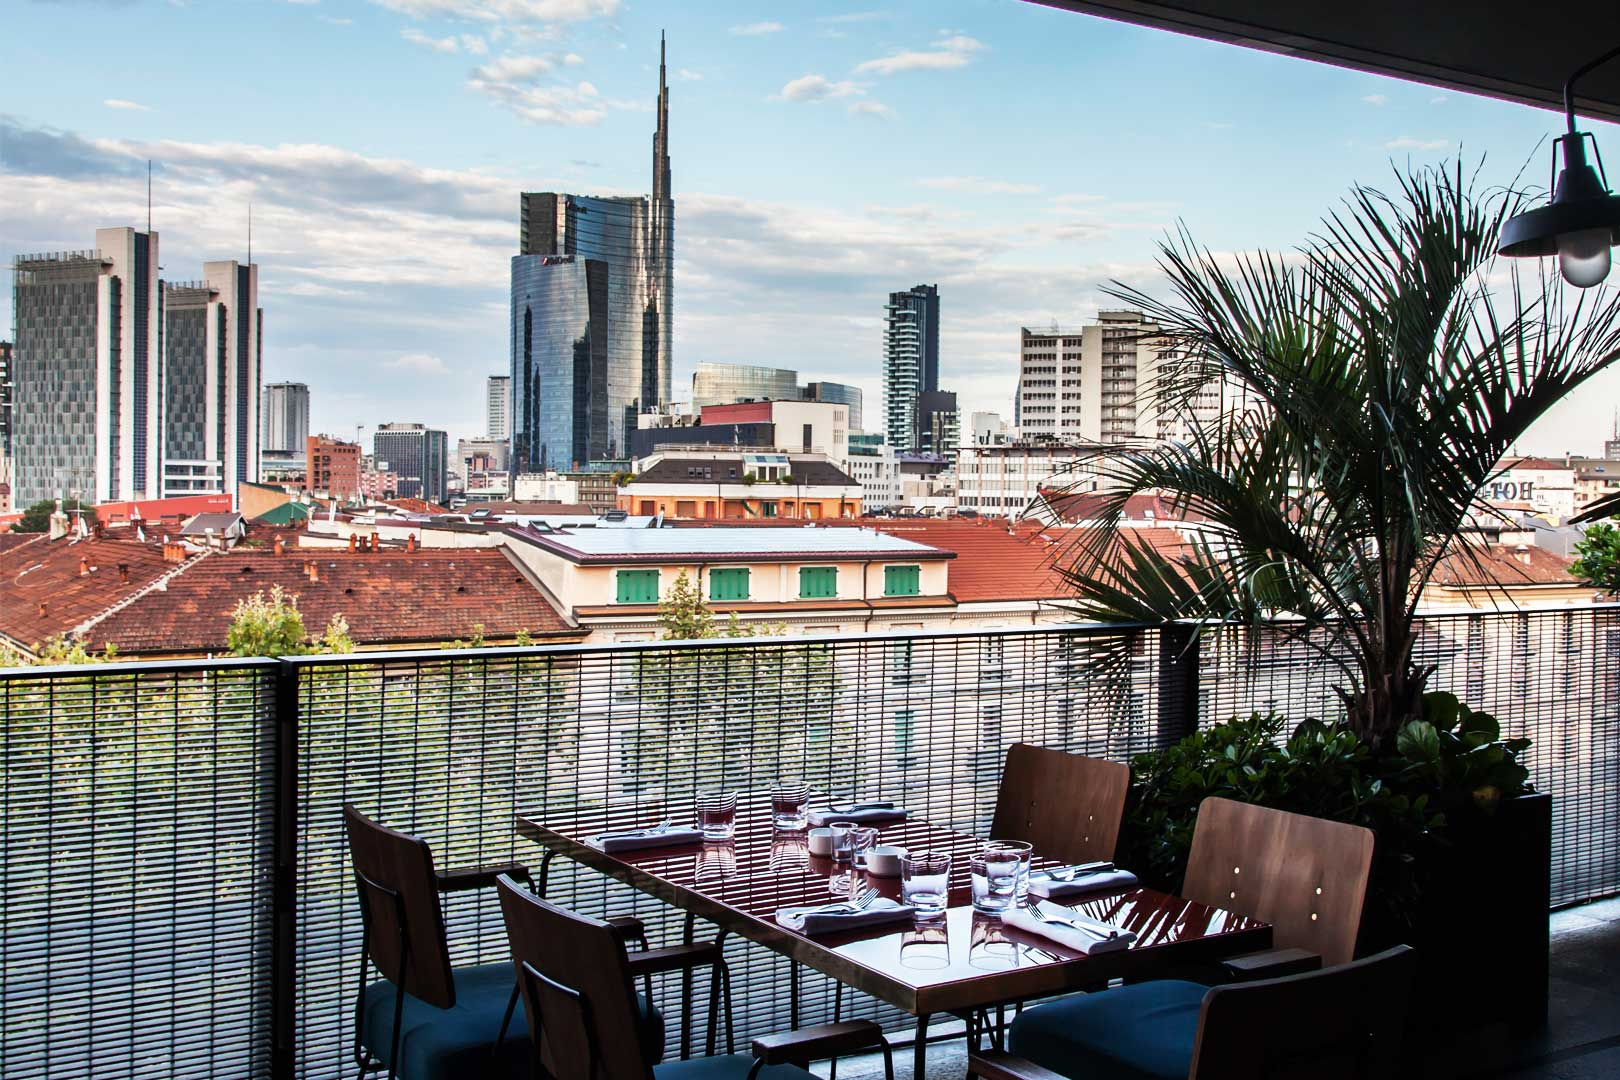 Ceresio 7 Flawless Milano - Lifestyle Guide